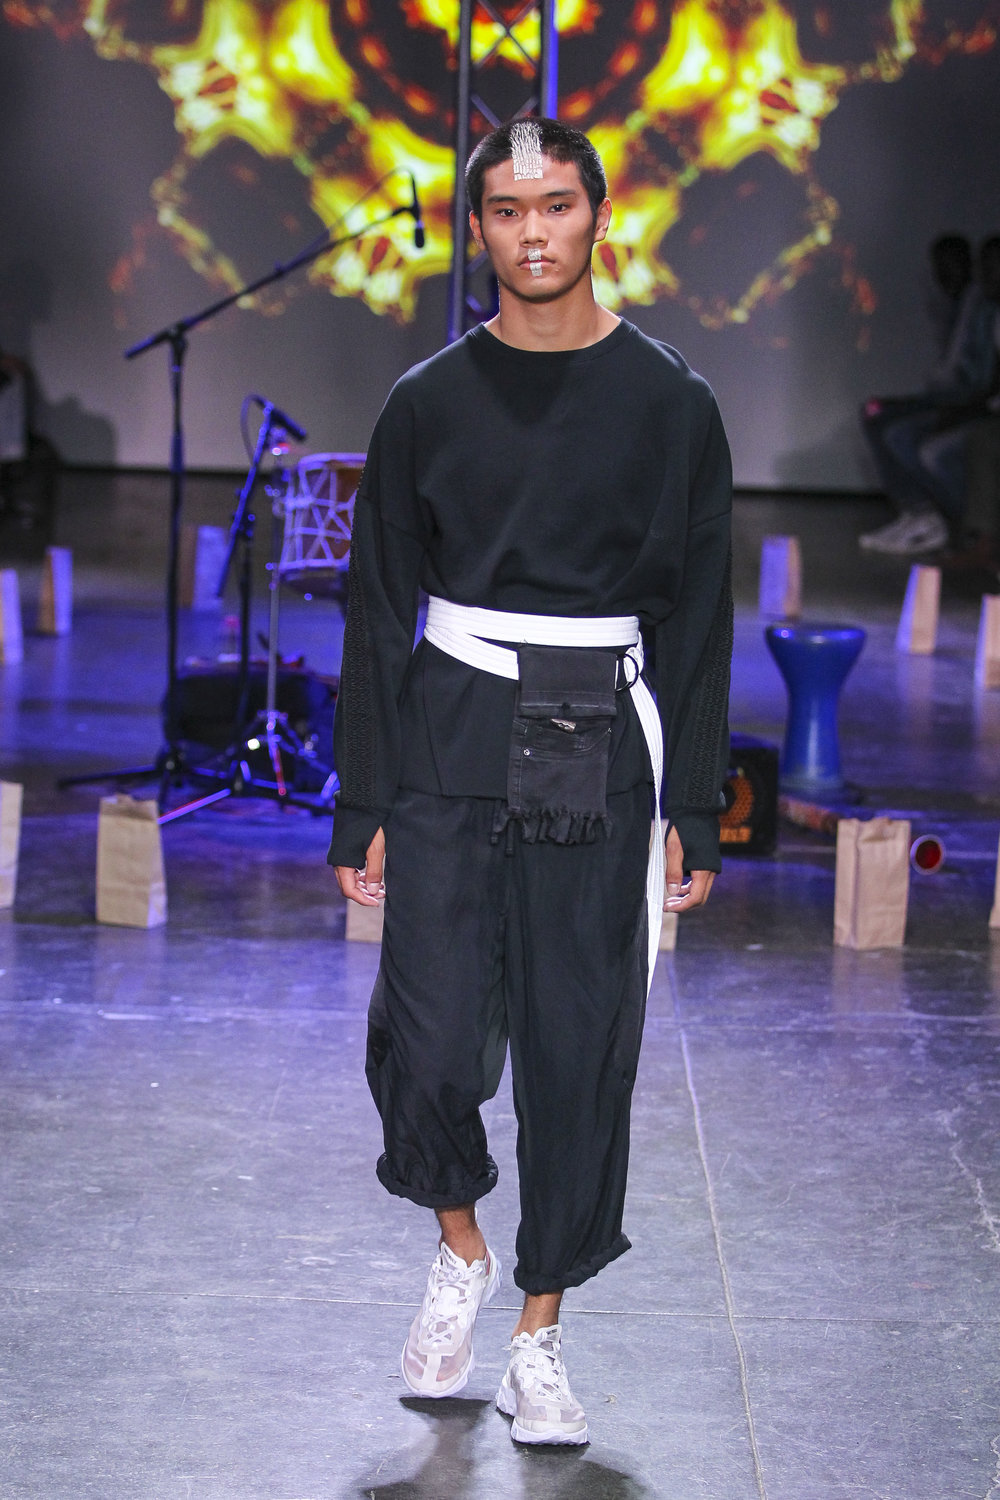 LOOK 12   ARC Desert Sweatshirt  / Black   ARC Taos Pant  / Black   ARC Wrap Belt  / White   ARC Shoulder Bag  (Worn on Belt)   Nike React Element 87